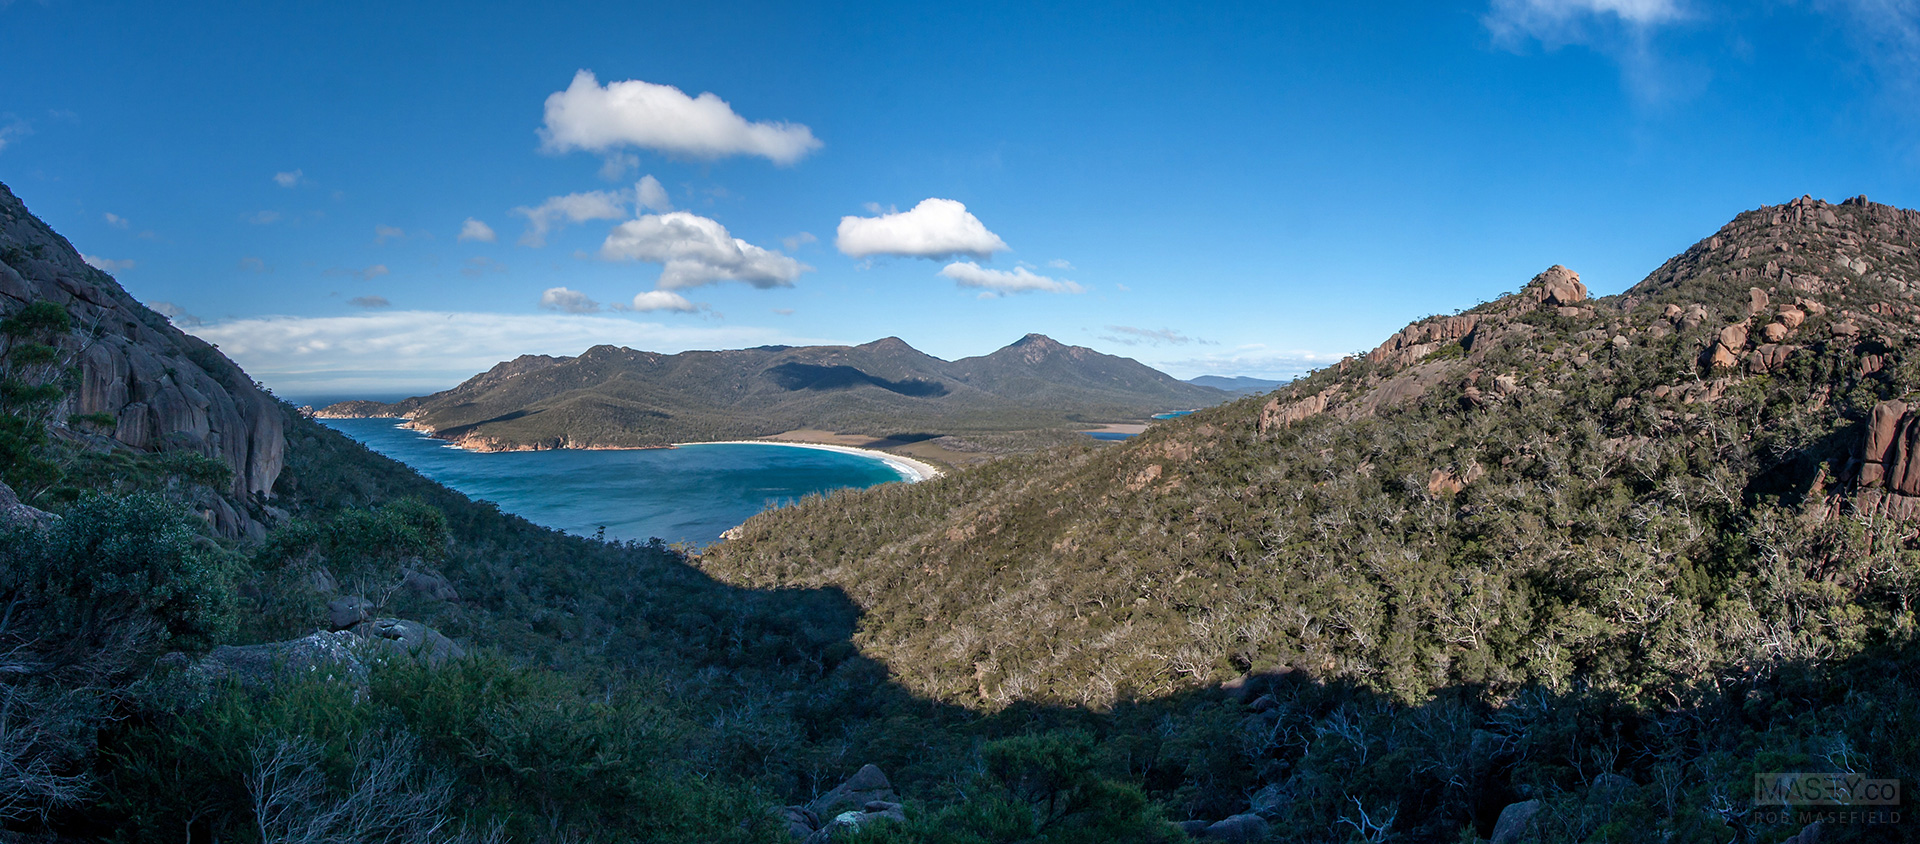 Our first sweeping view of the beautiful Wineglass Bay.